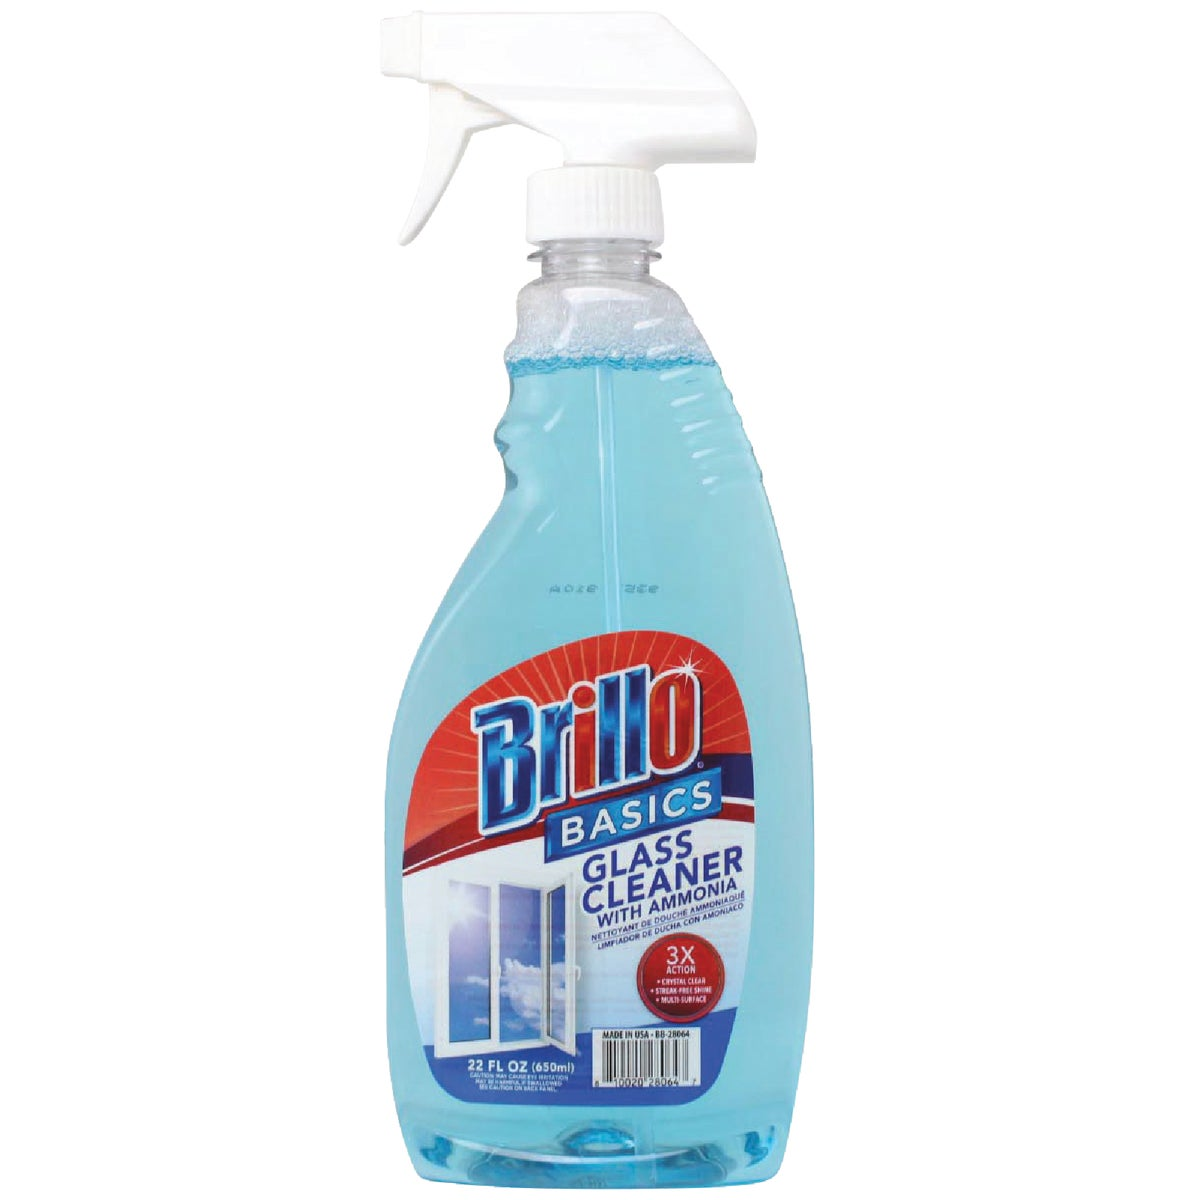 22OZ GLASS CLEANER - 90629 by Personal Care Prod